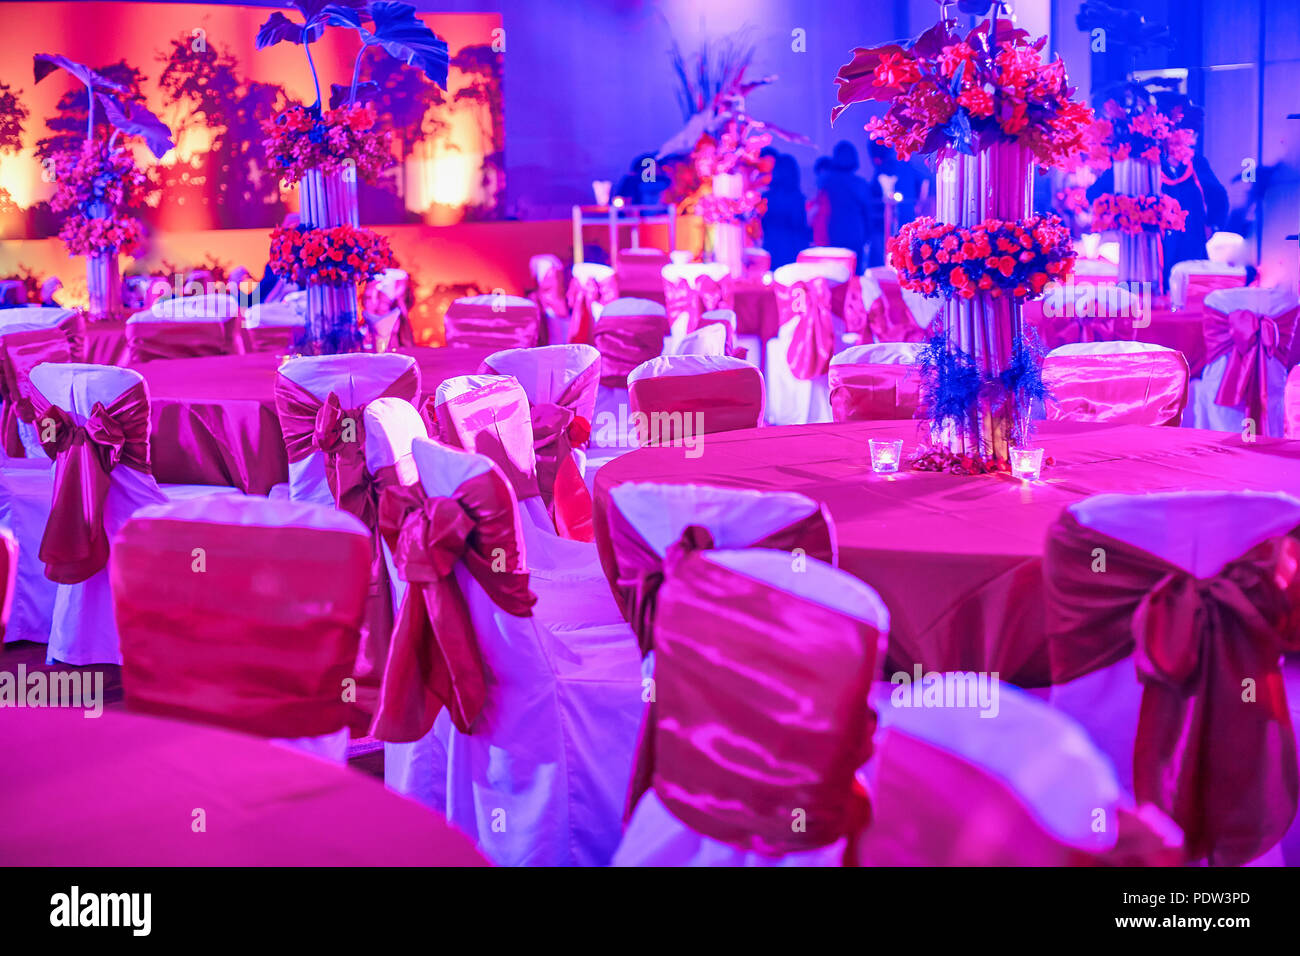 led table and chairs chair sex toy indian wedding reception dinner settings decorating with vase of flower colorful lighting decoration for traditional sangeet